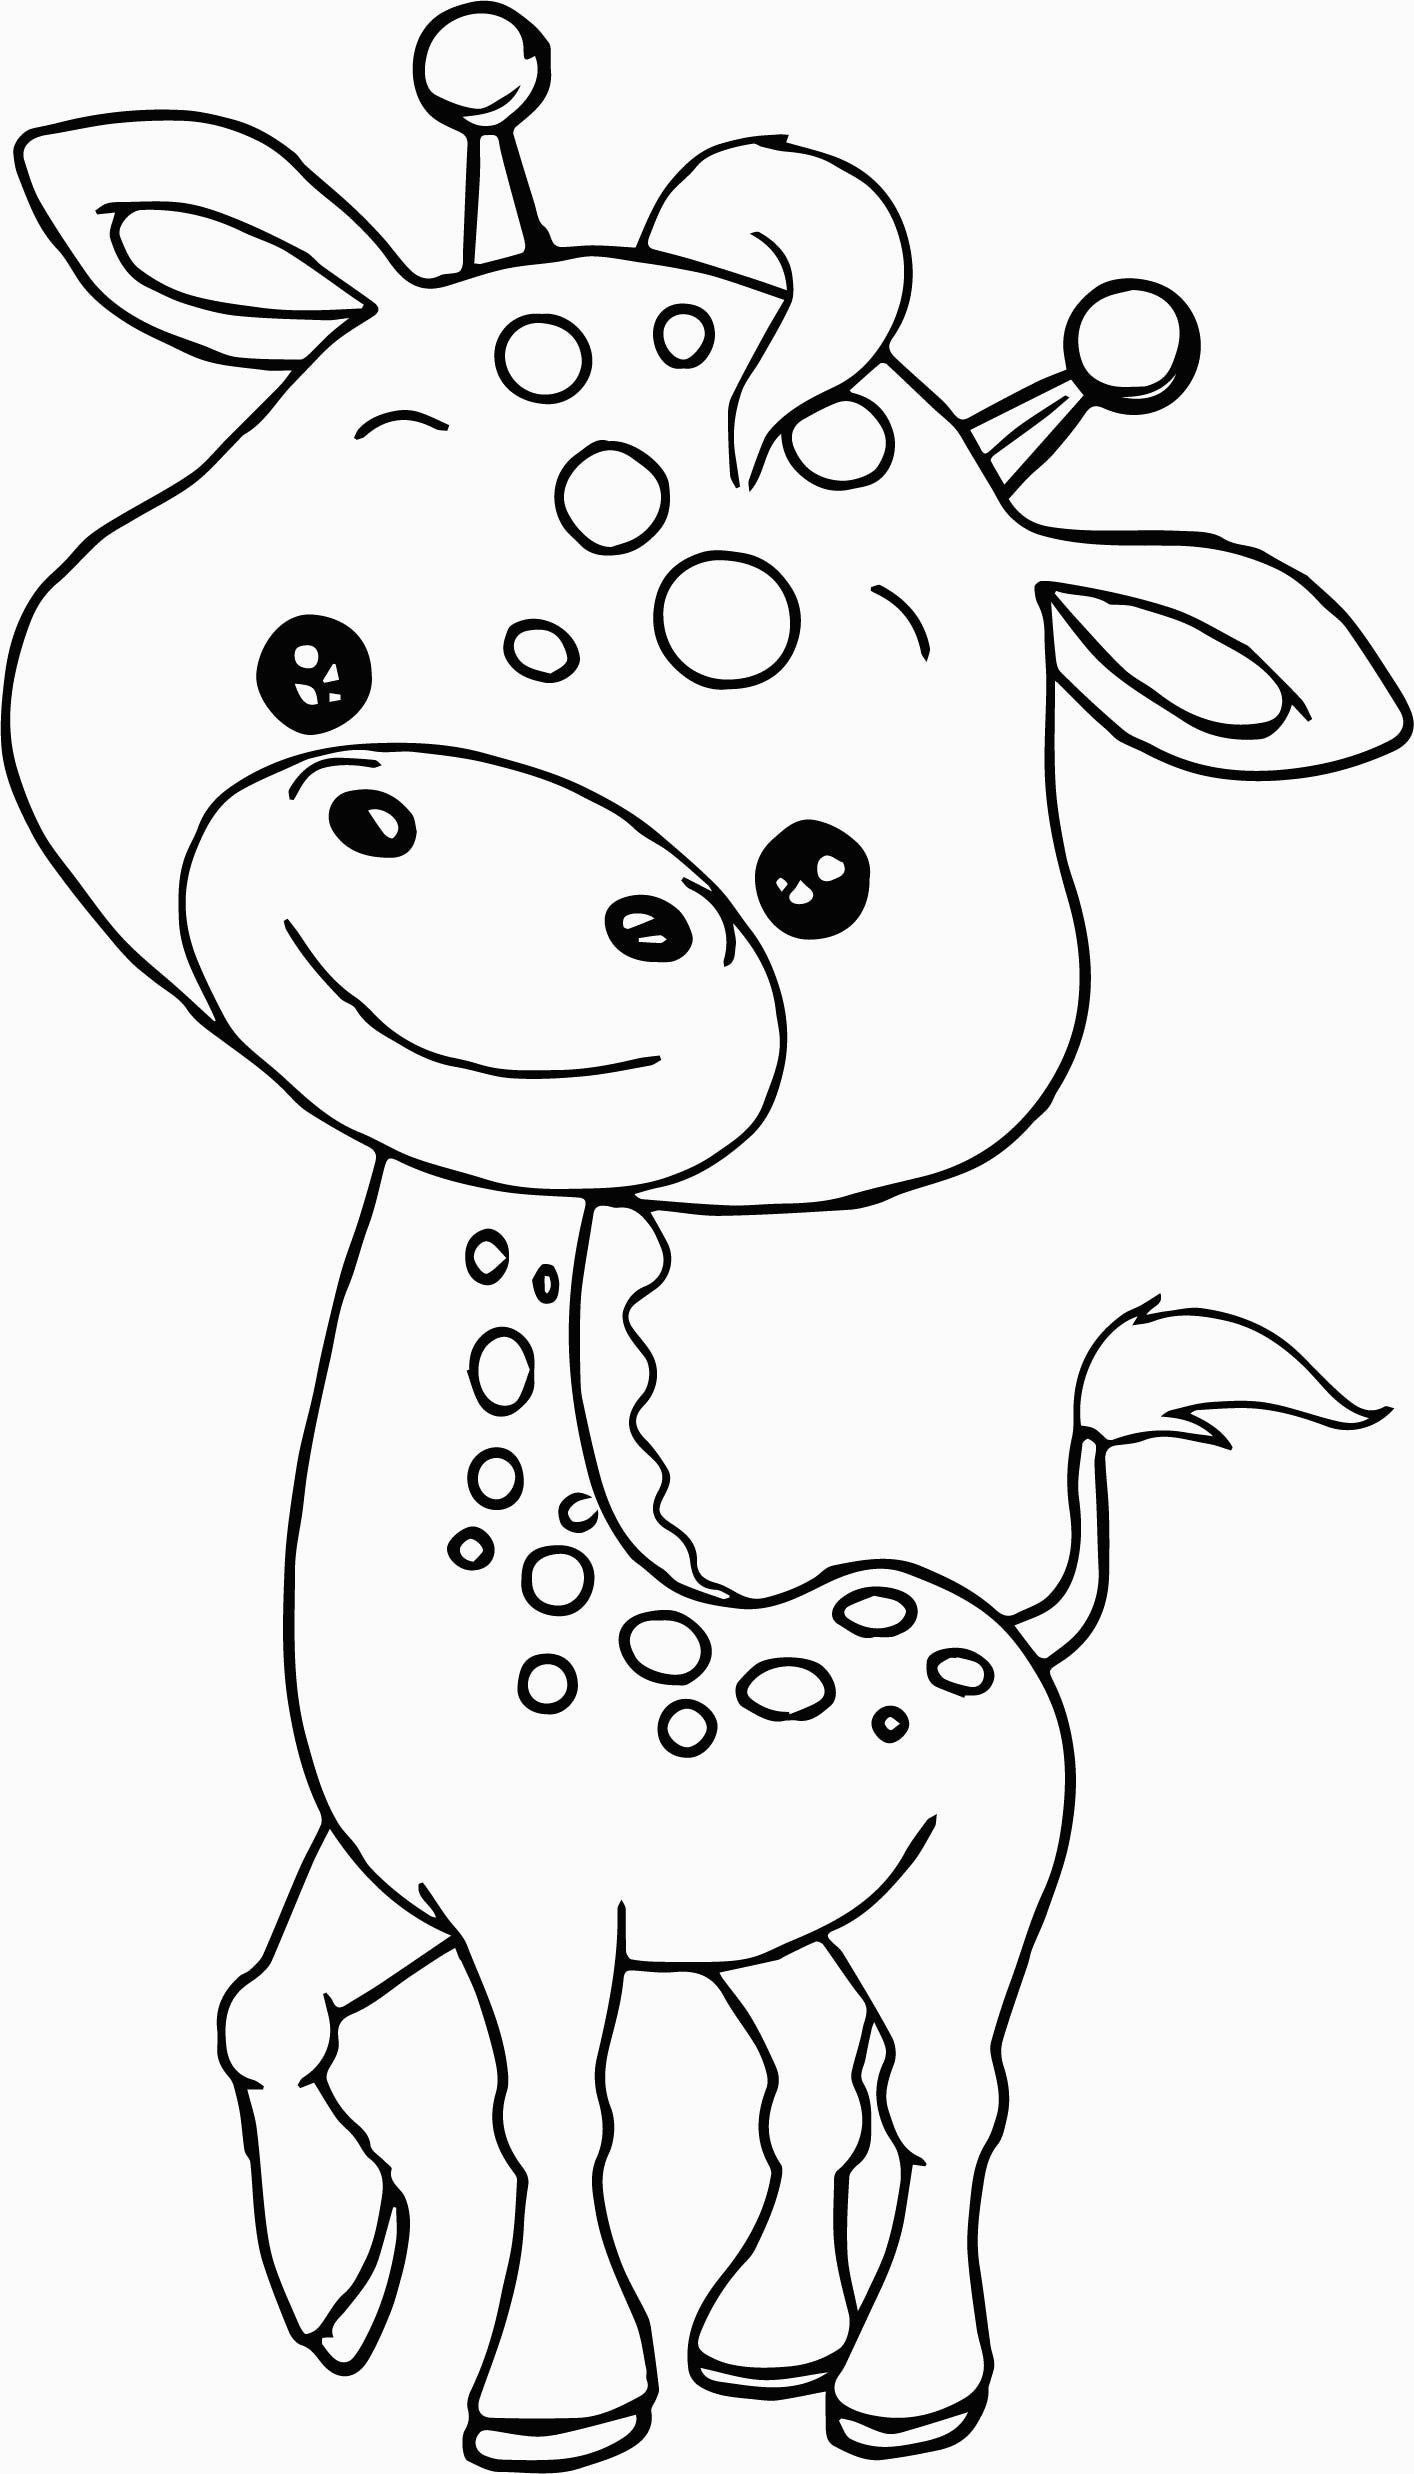 Animals Coloring Pages For Kids Coloring Pages Best Coloring Free Jungle Animals Zoo For In 2020 Zoo Animal Coloring Pages Zoo Coloring Pages Giraffe Coloring Pages